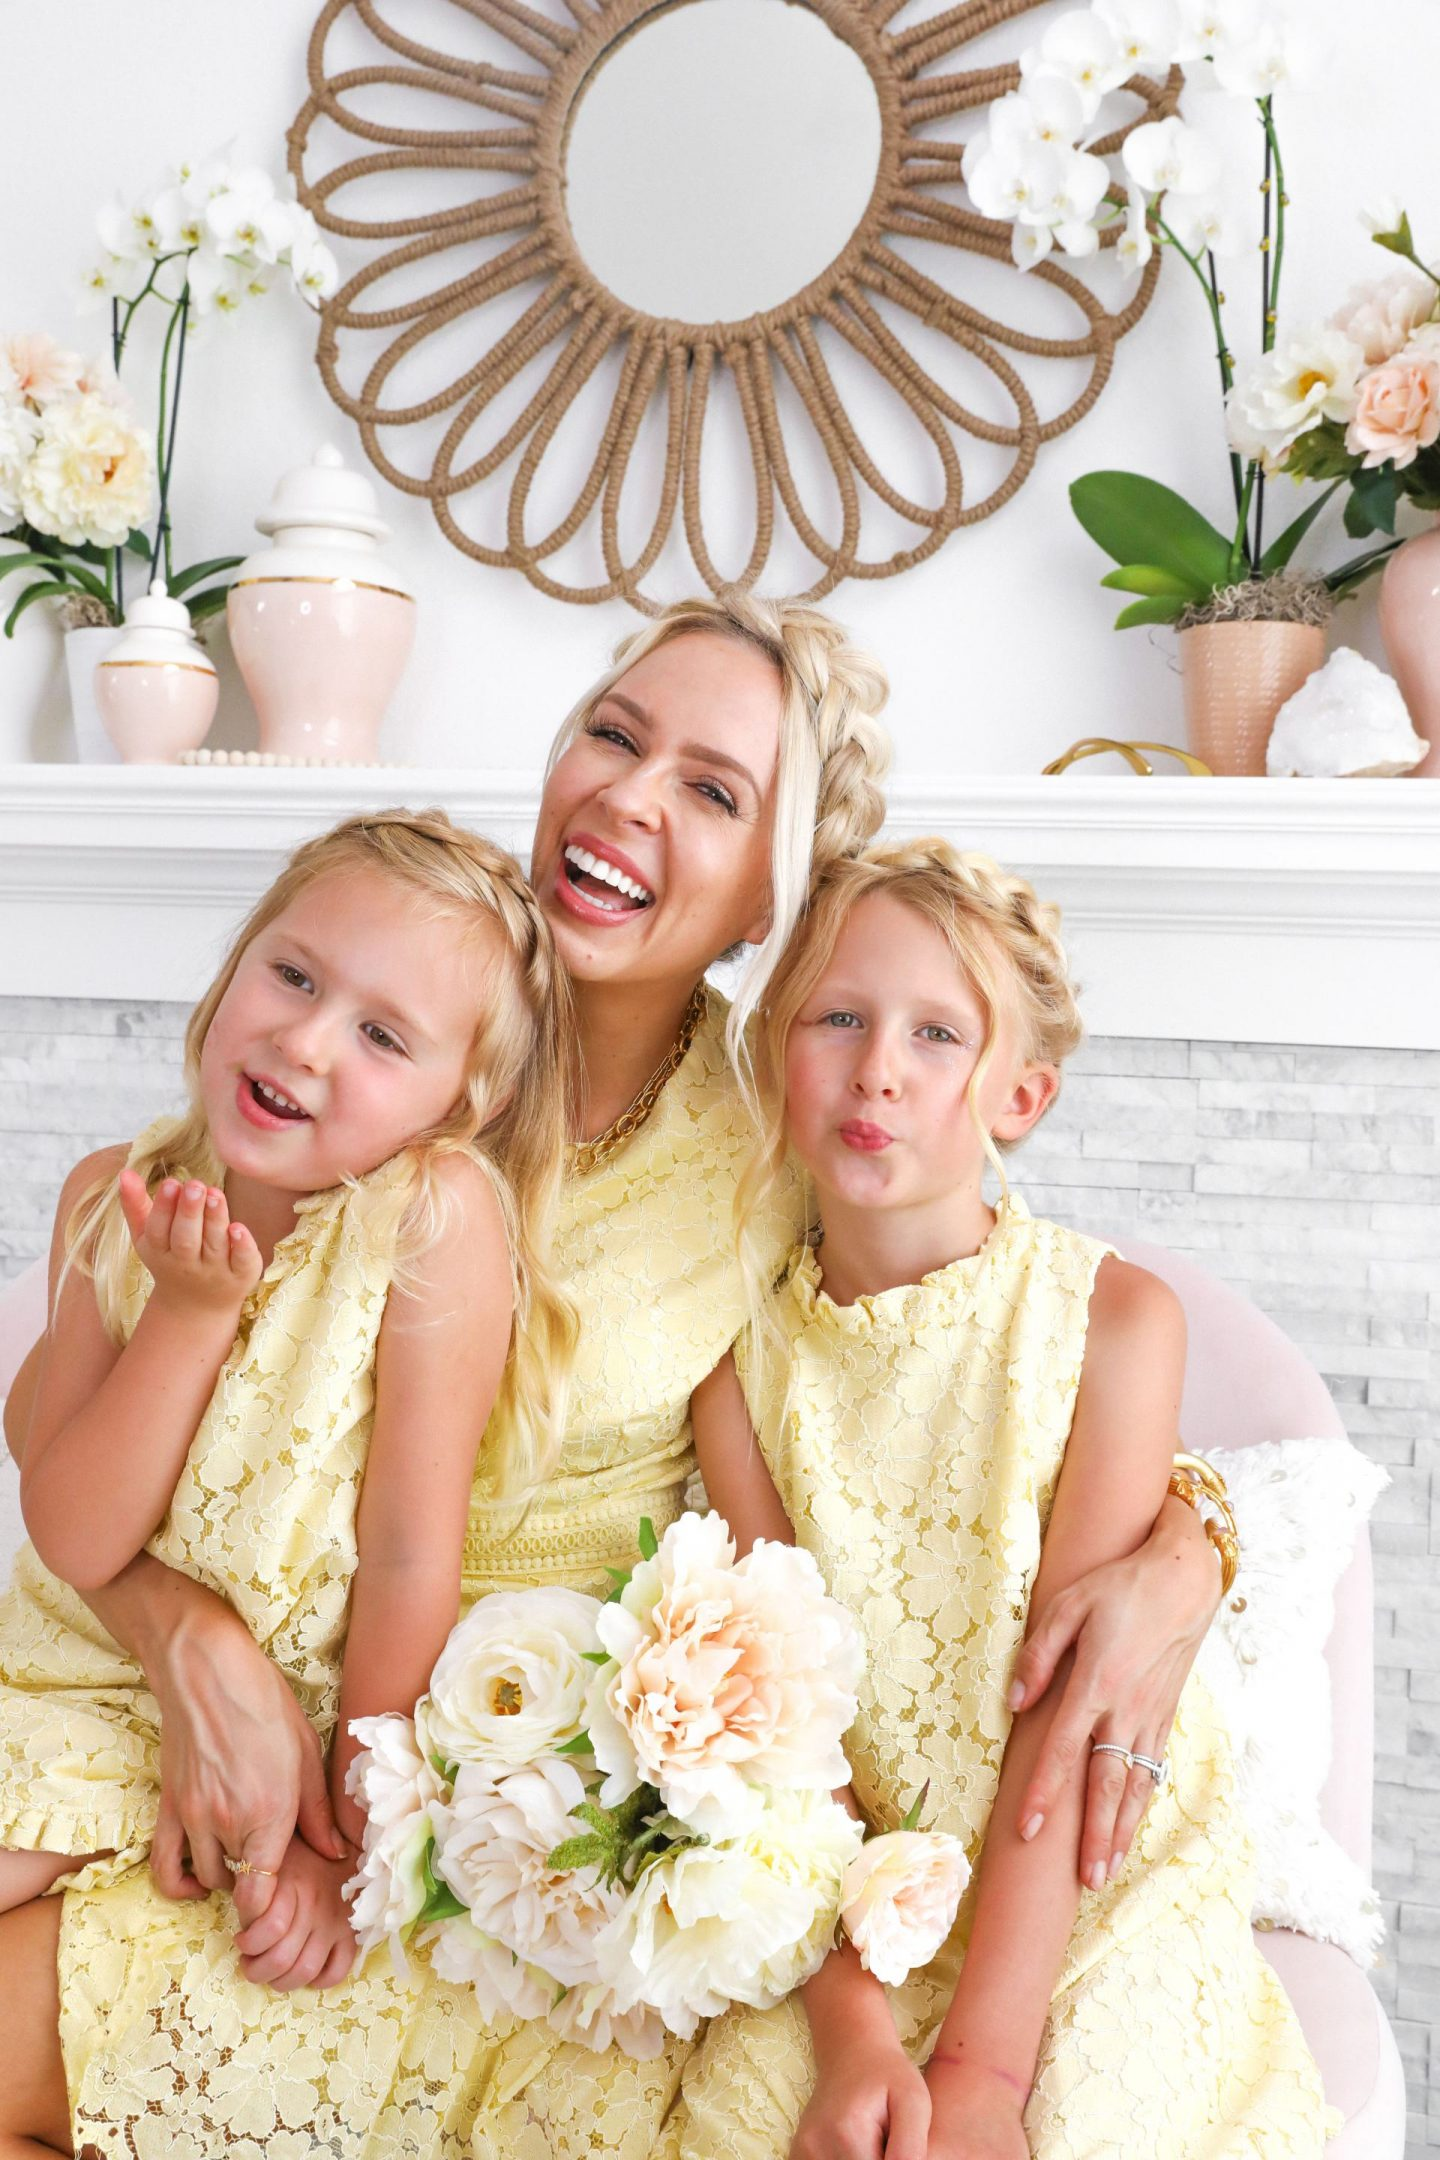 Rachel Parcell, Ivy City Co best mommy and me brands for summer, featured by San Francisco style blogger Lombard and Fifth.